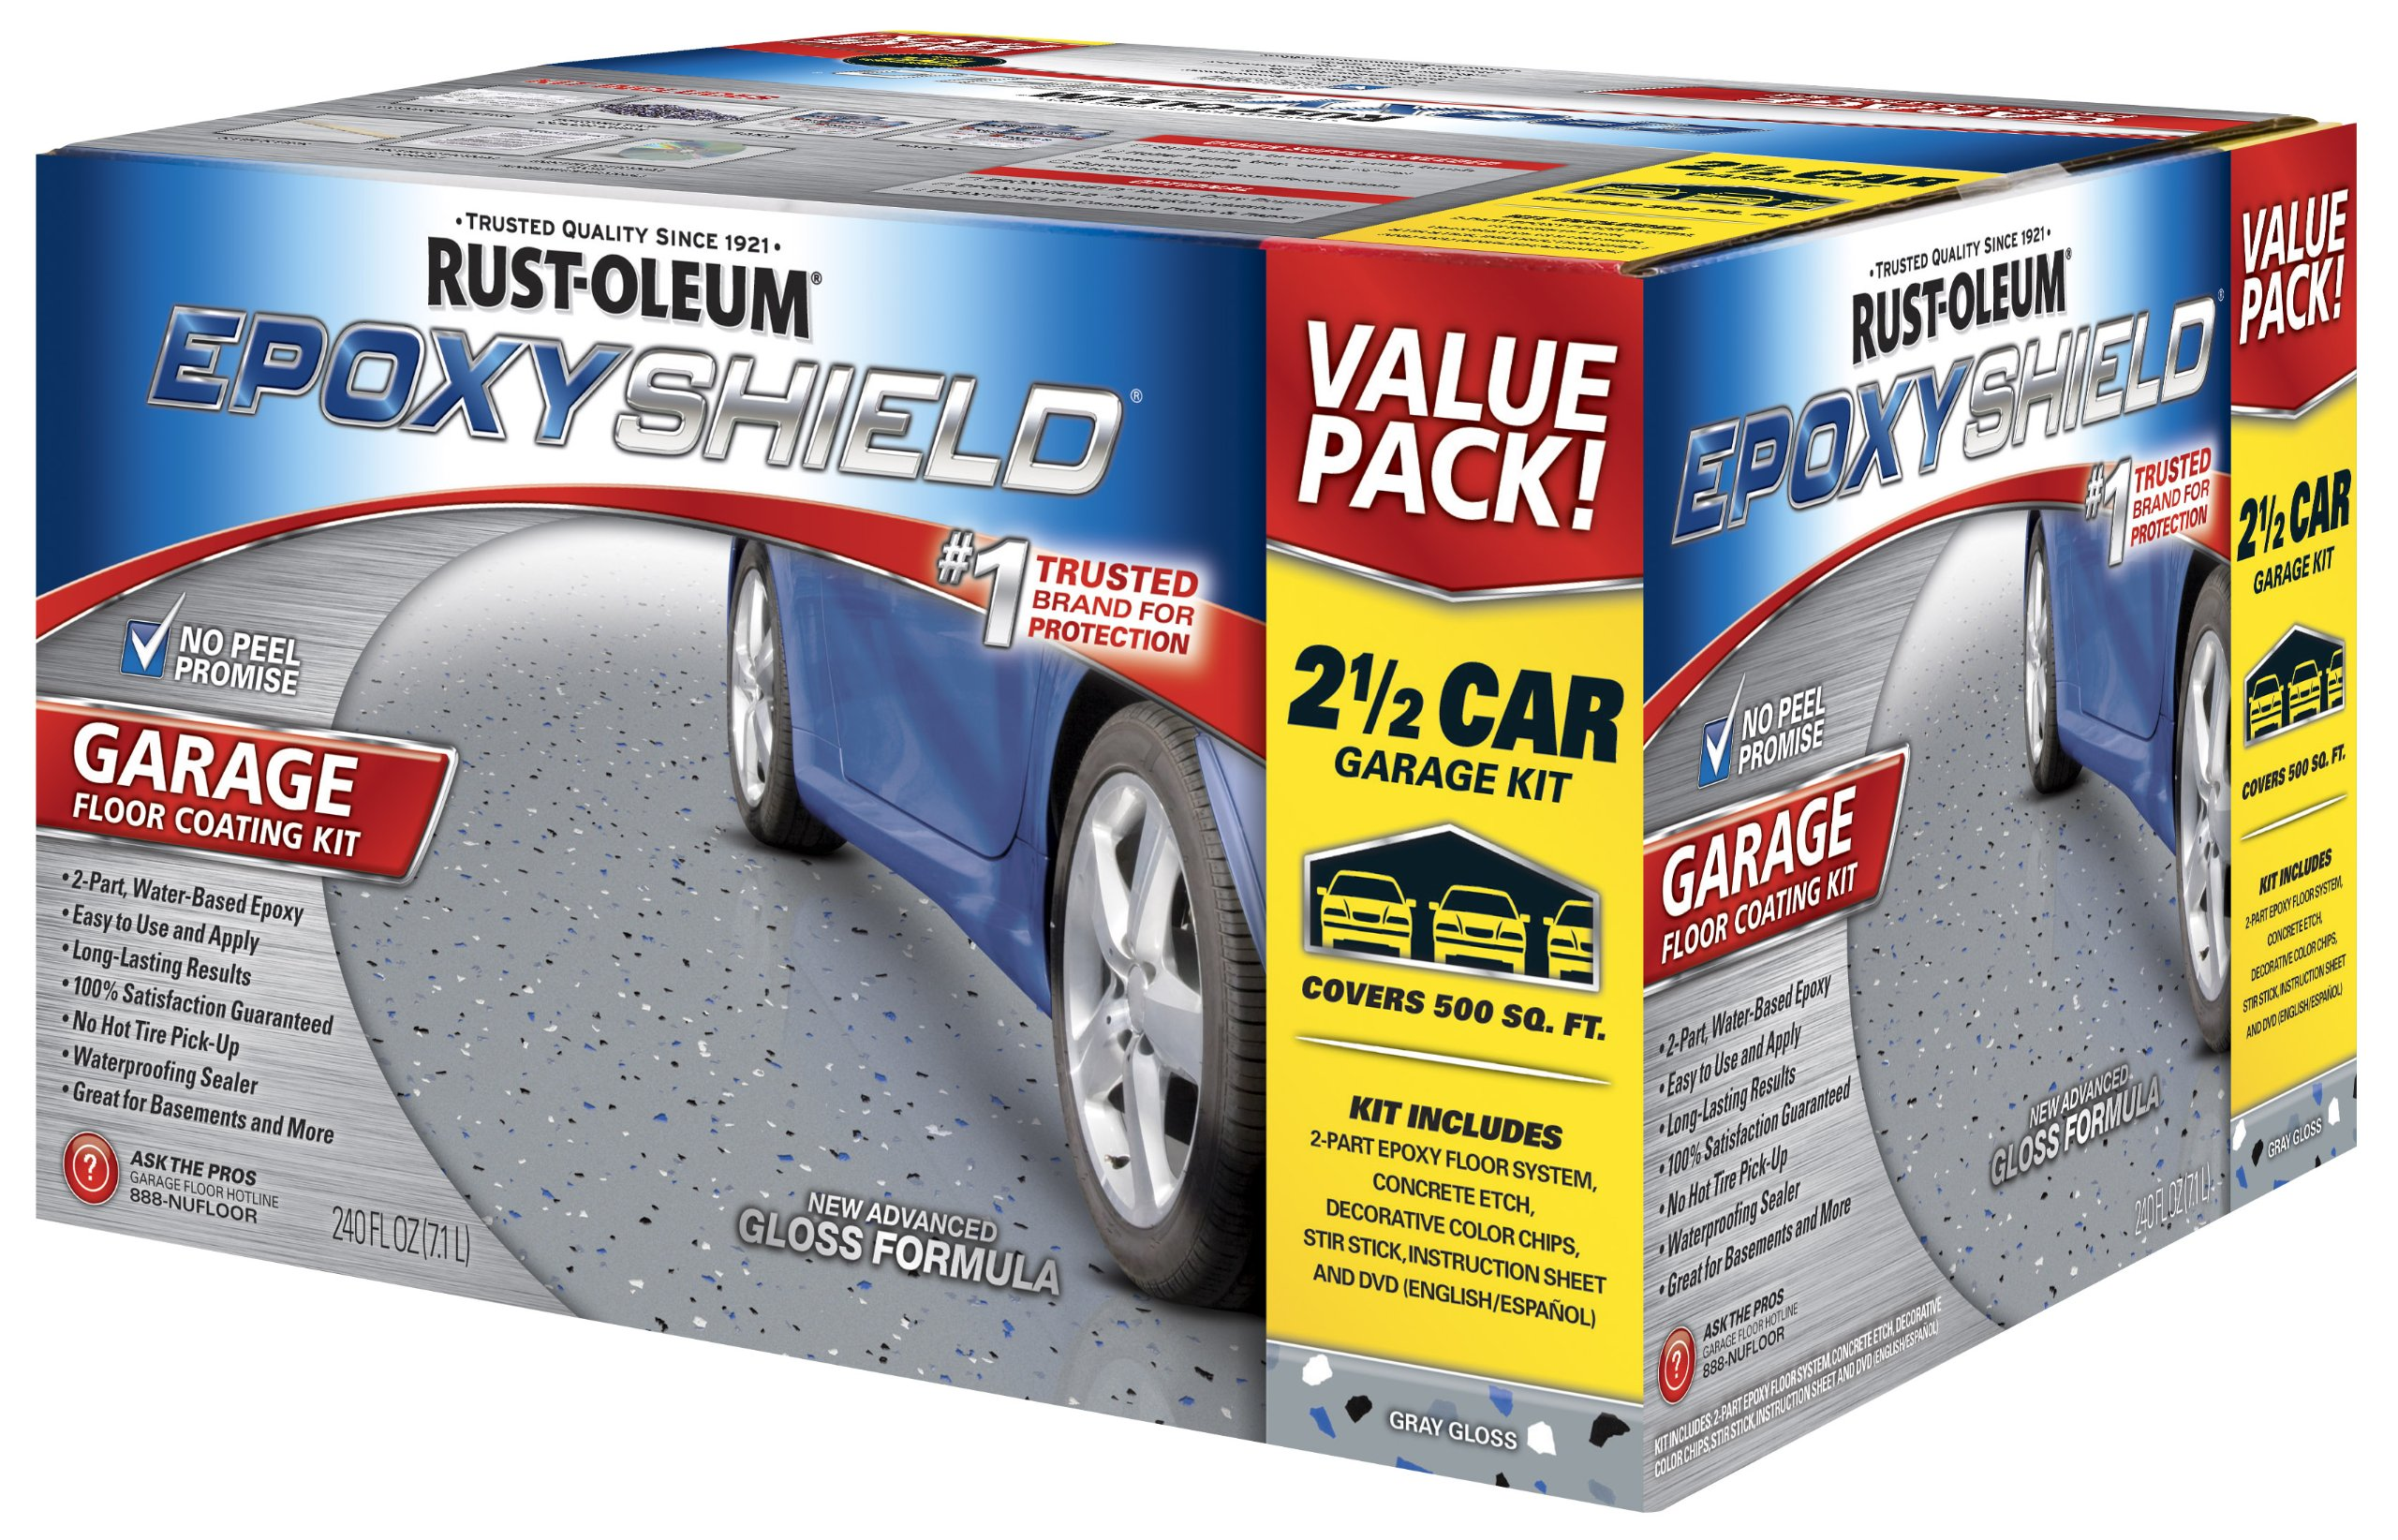 Rust Oleum 261845 EpoxyShield Garage Coating